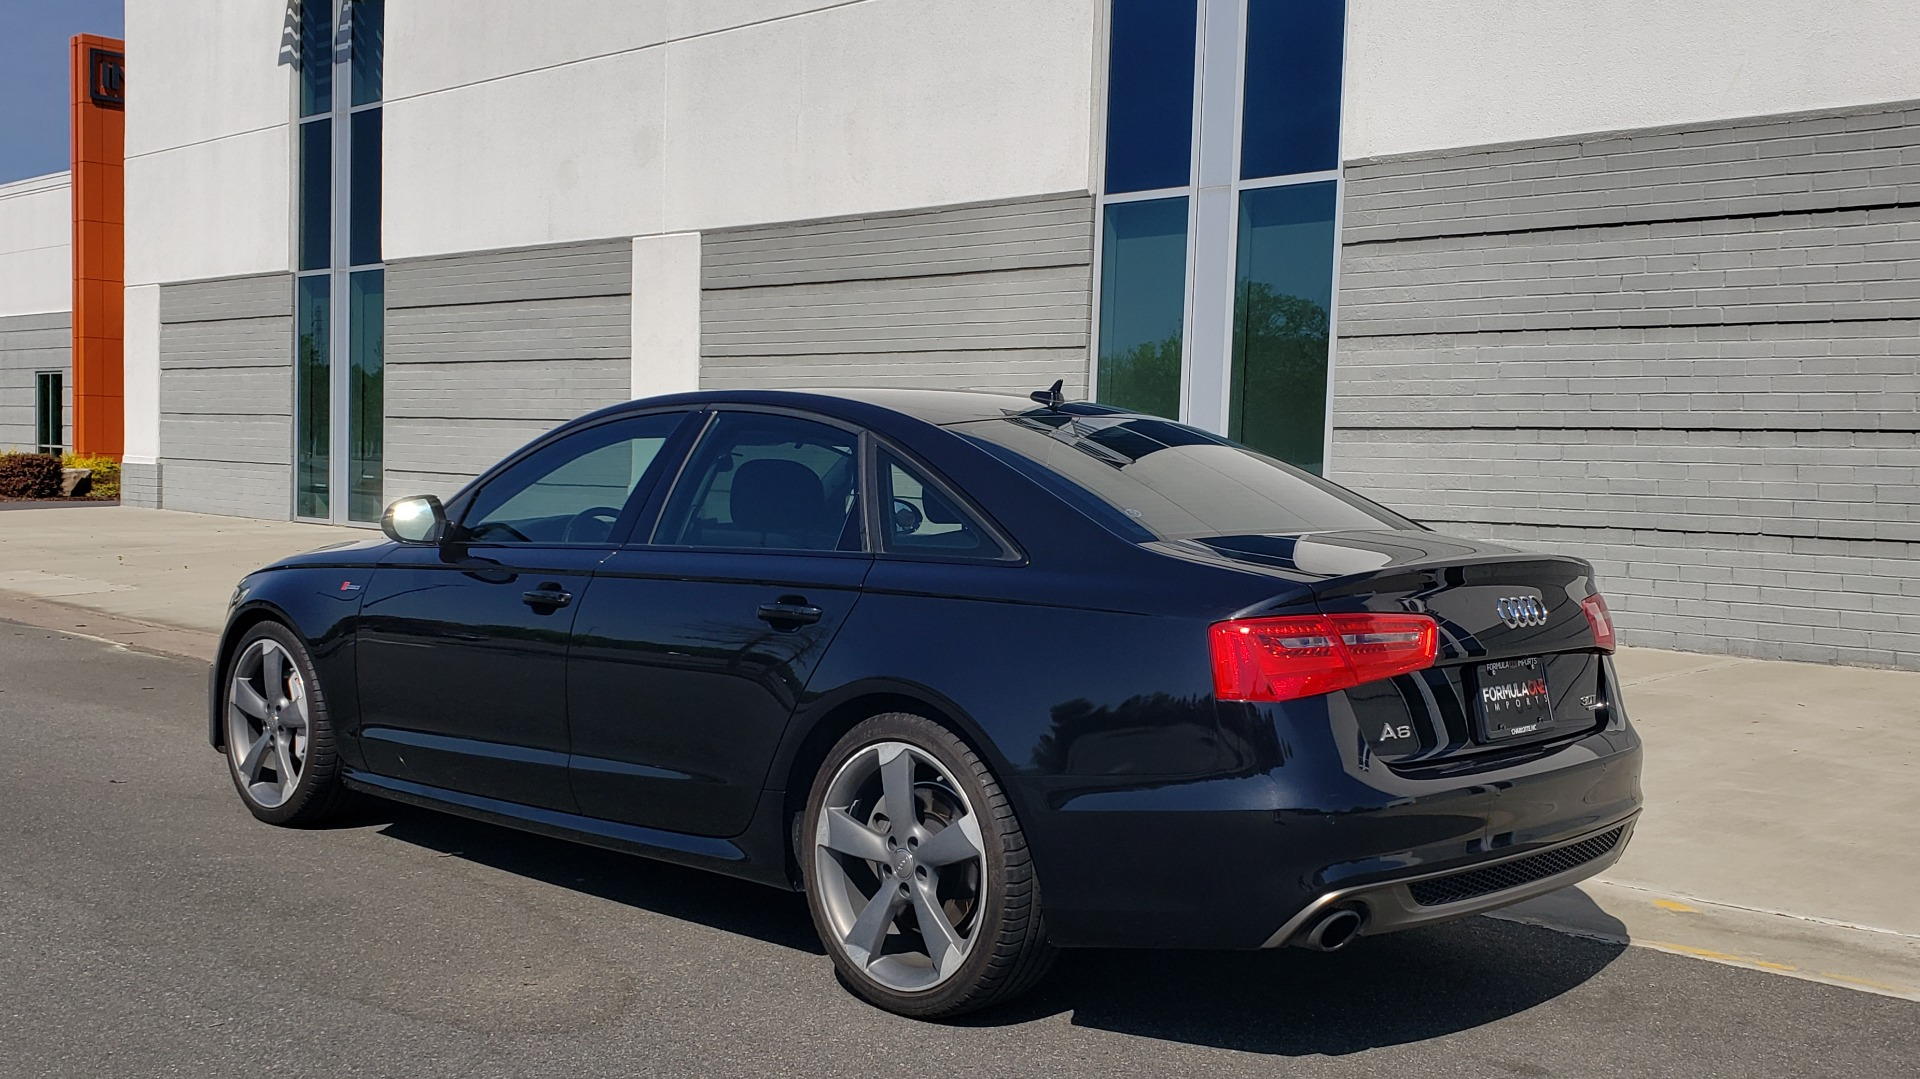 Used 2015 Audi A6 3.0T PRESTIGE / BLACK OPTIC / CLD WTHR / BOSE / HUD / SUNROOF for sale Sold at Formula Imports in Charlotte NC 28227 5